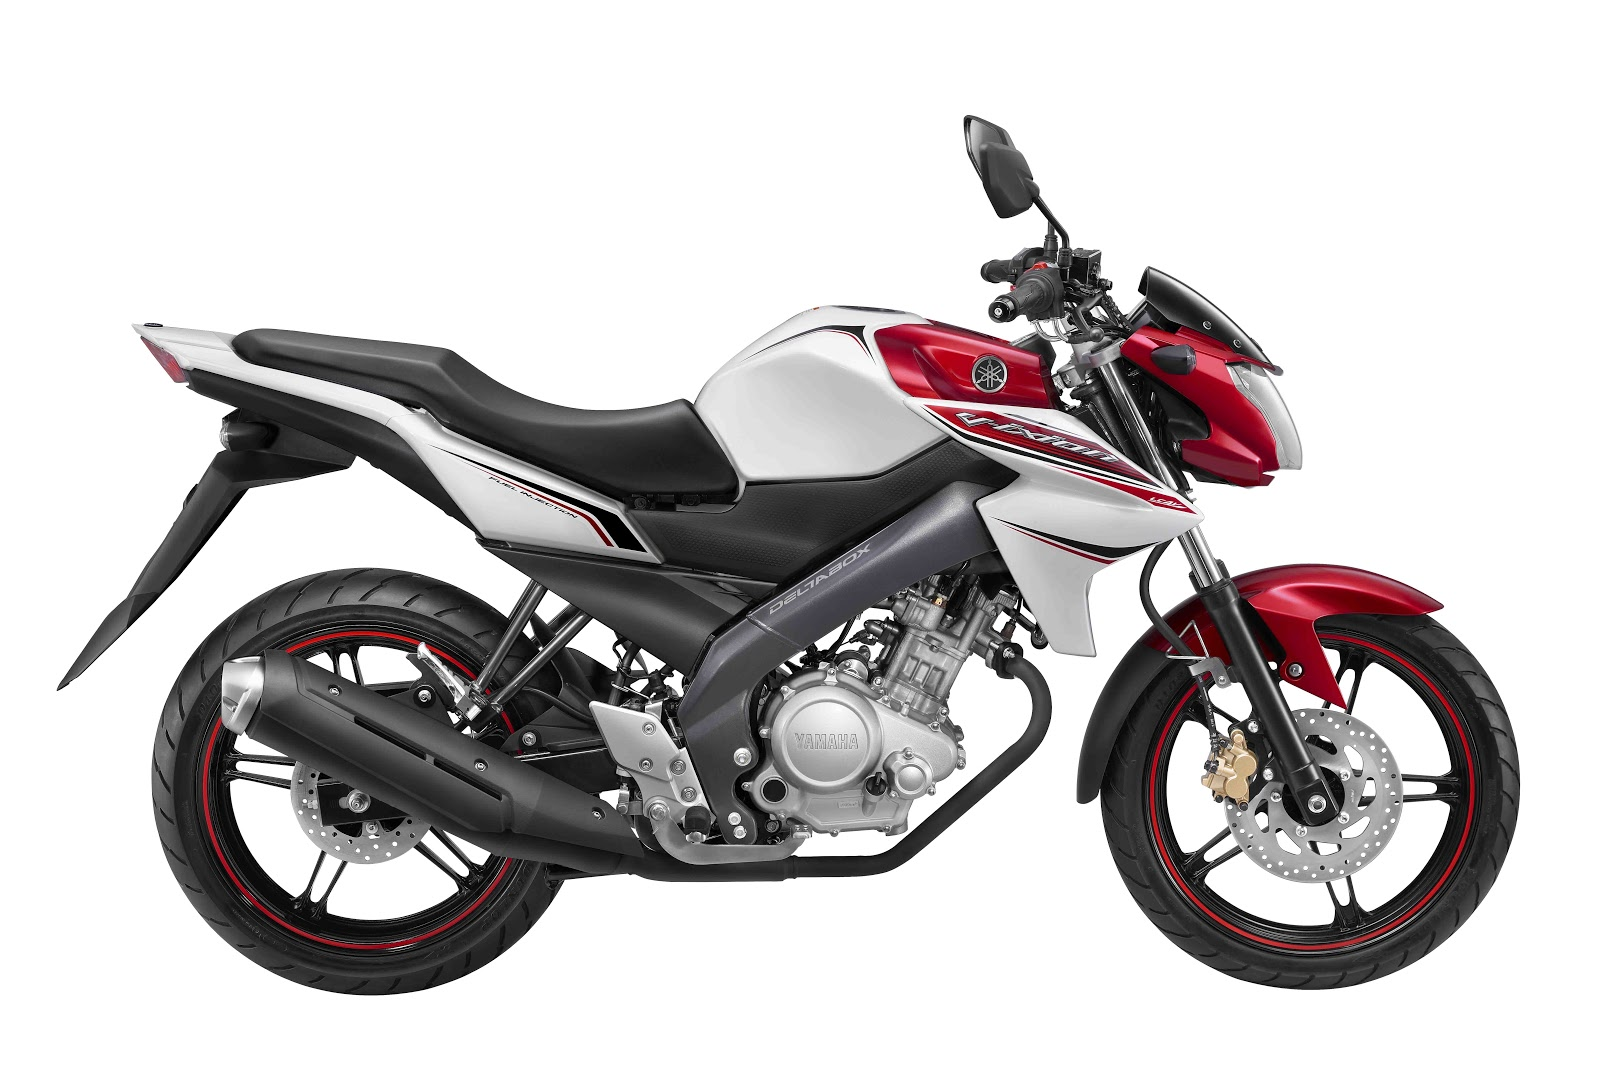 Yamaha Vixion in 2013 | Motorcycle and Car News The Latest